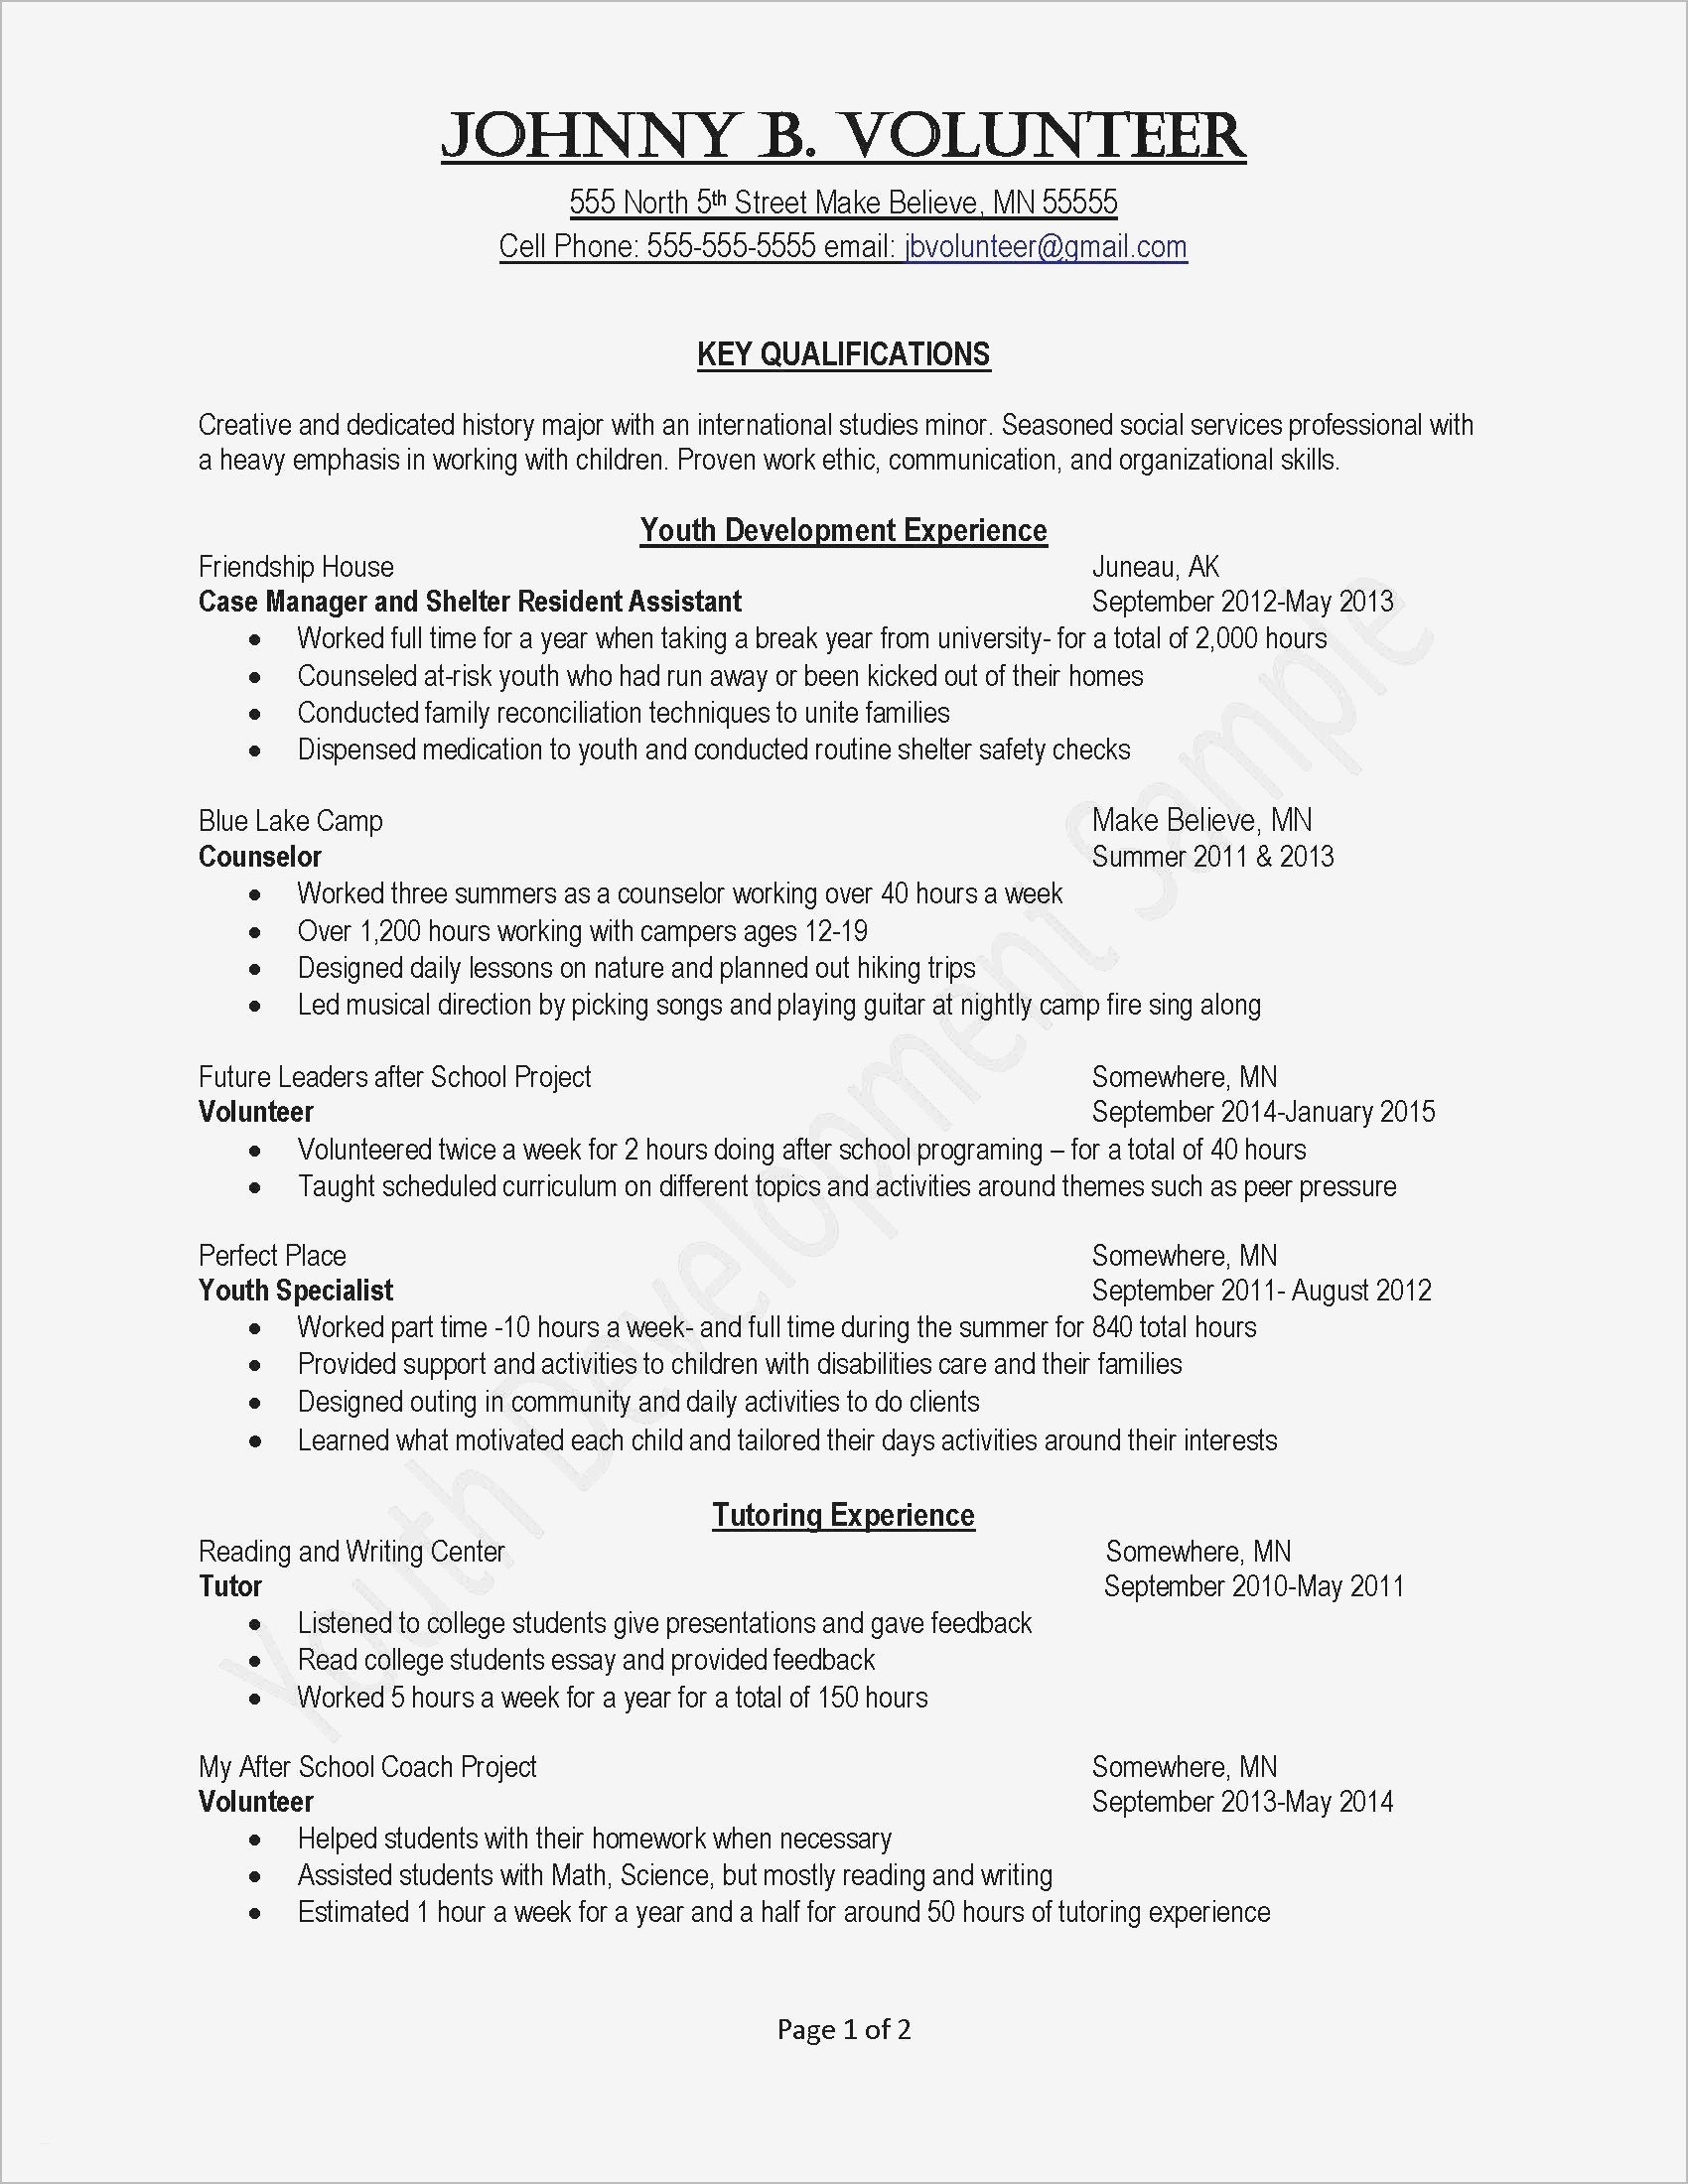 Resume Template for social Worker - Template for A Resume Inspirationa Cfo Resume Template Inspirational